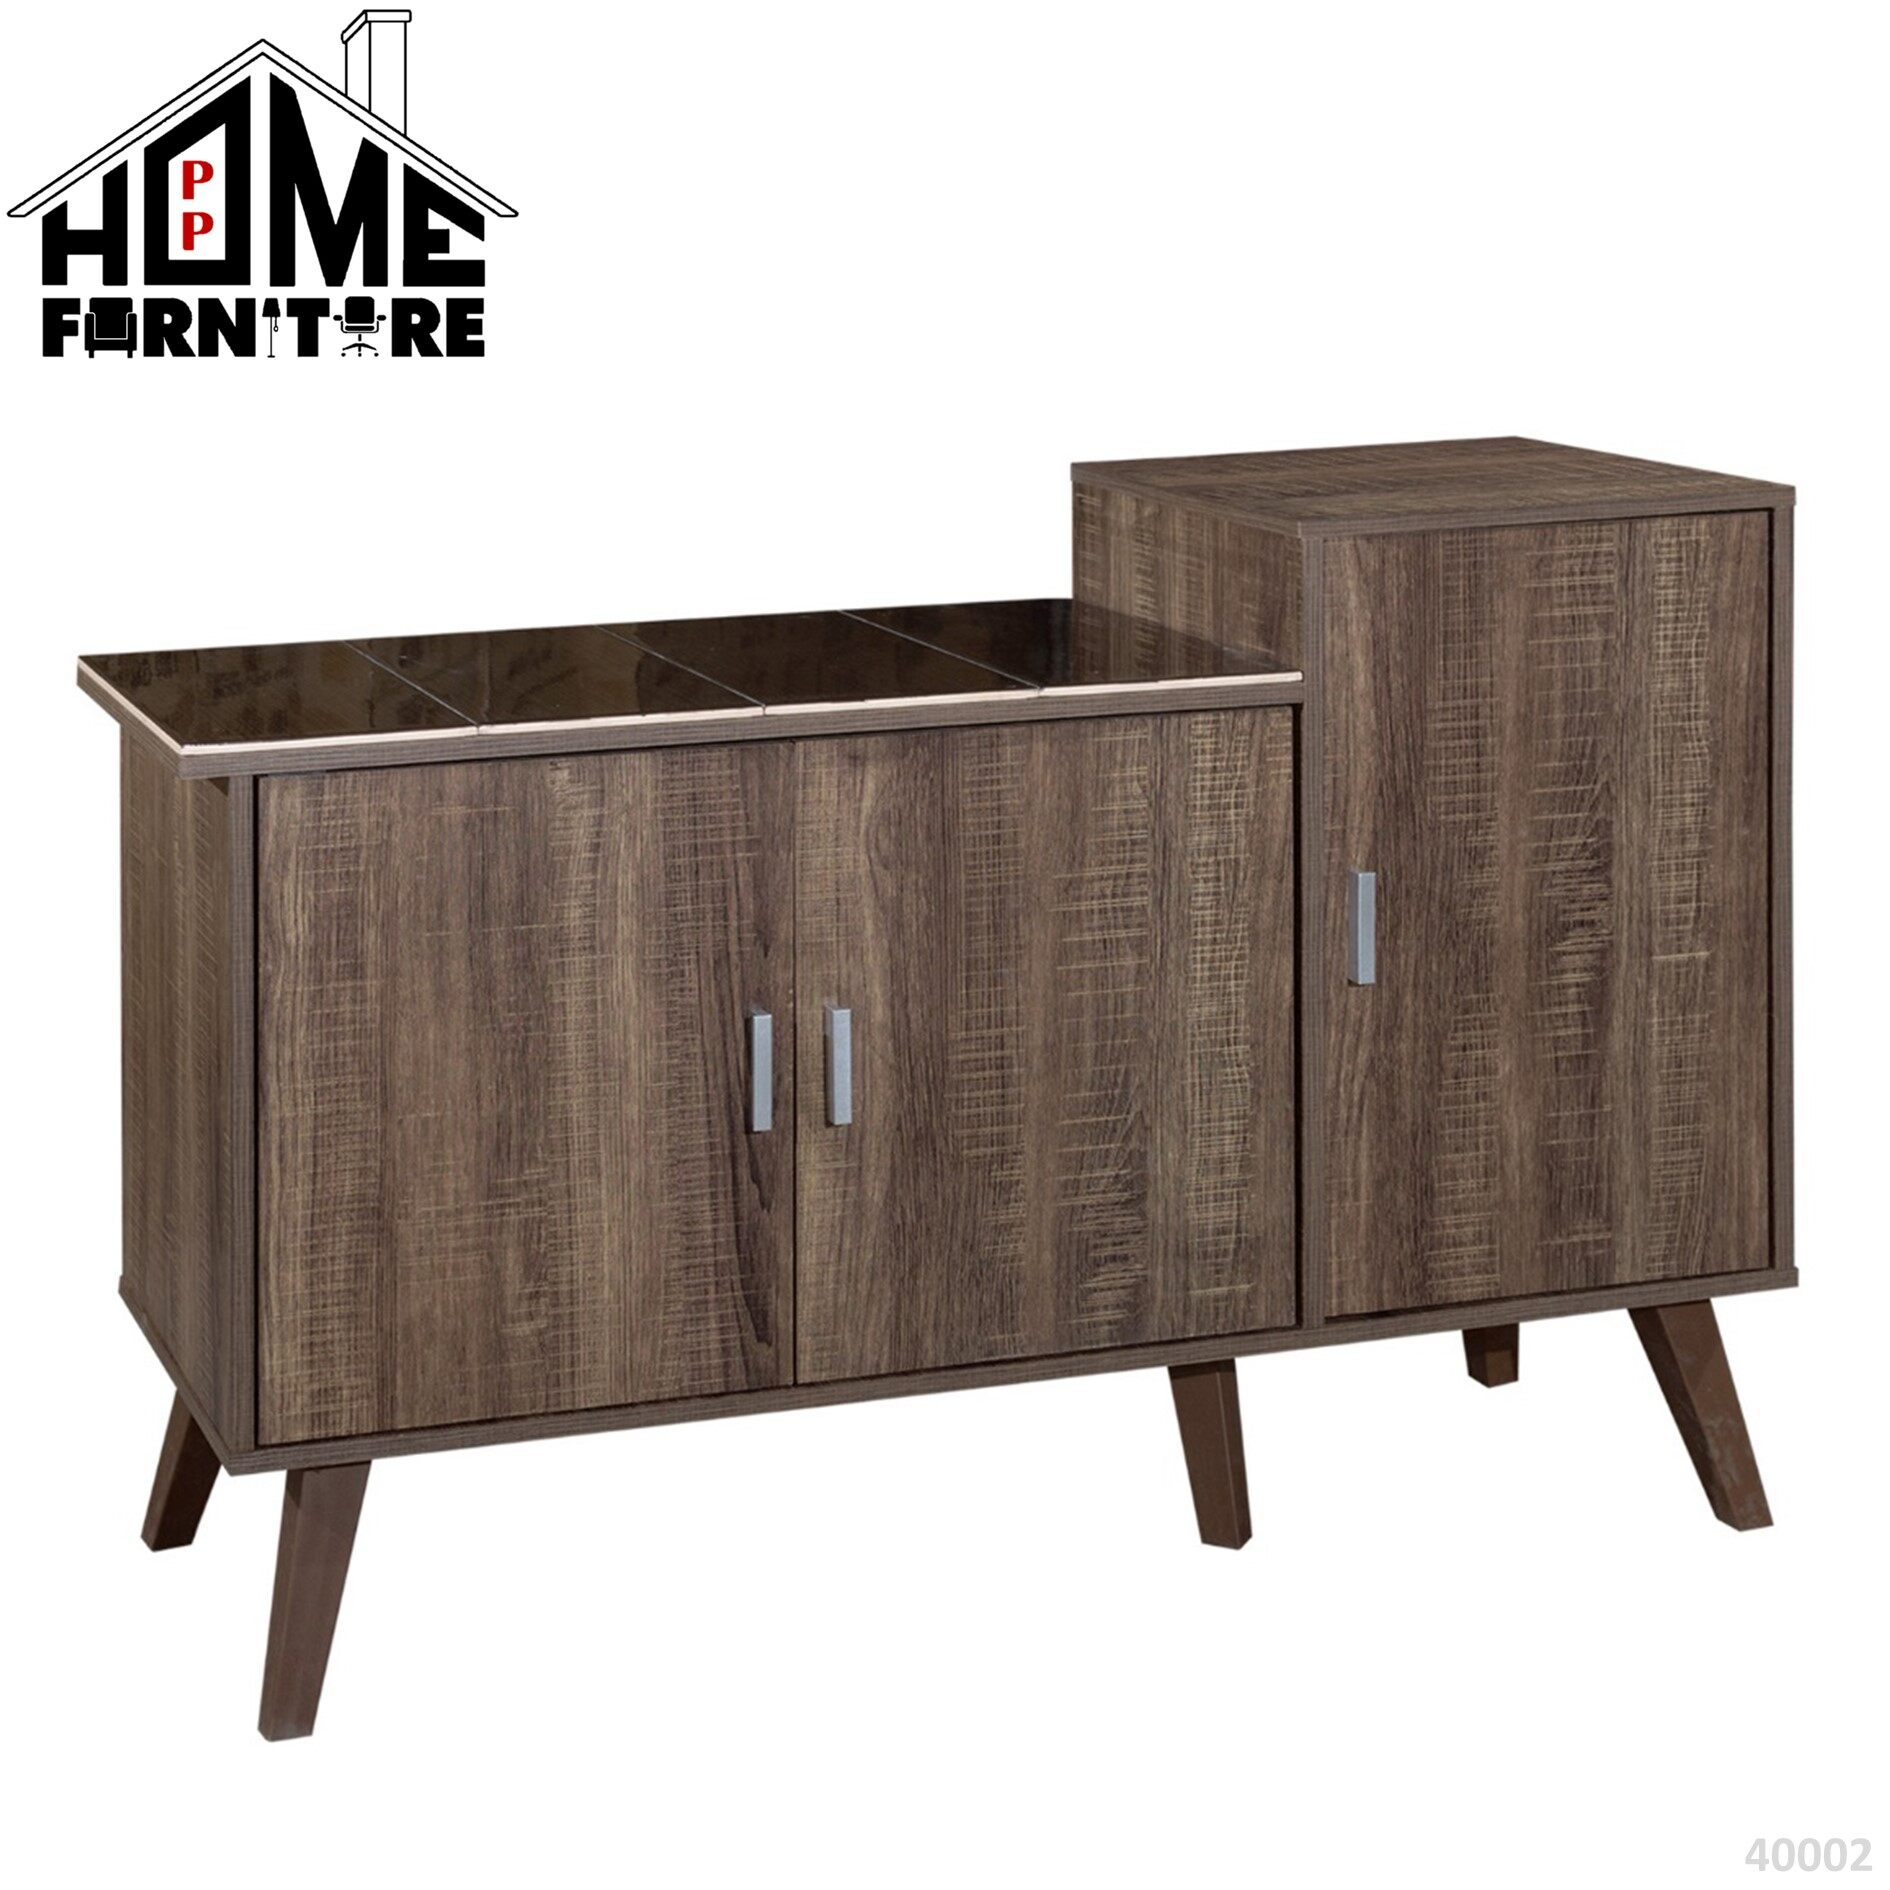 PP HOME Kitchen Cabinet with Mosaic Top /Gas Cabinet/ Almari dapur/ gas kabinet/ kabinet dapur 厨房煤气柜- Brown